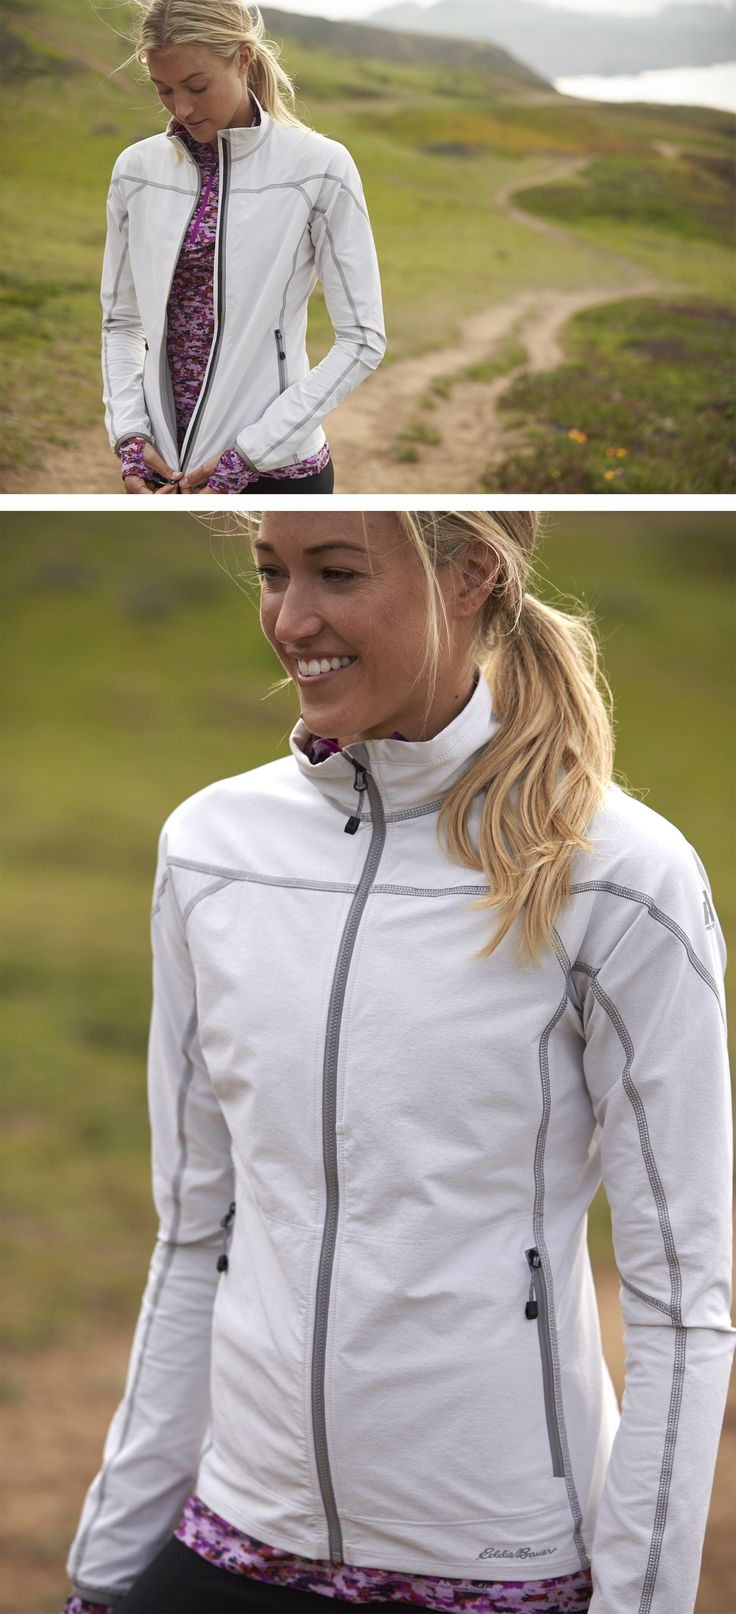 sport shoes sale uk Summer adventuring can get chilly sometimes and when it does  grab your Sandstone Softshell Jacket   eddiebauer